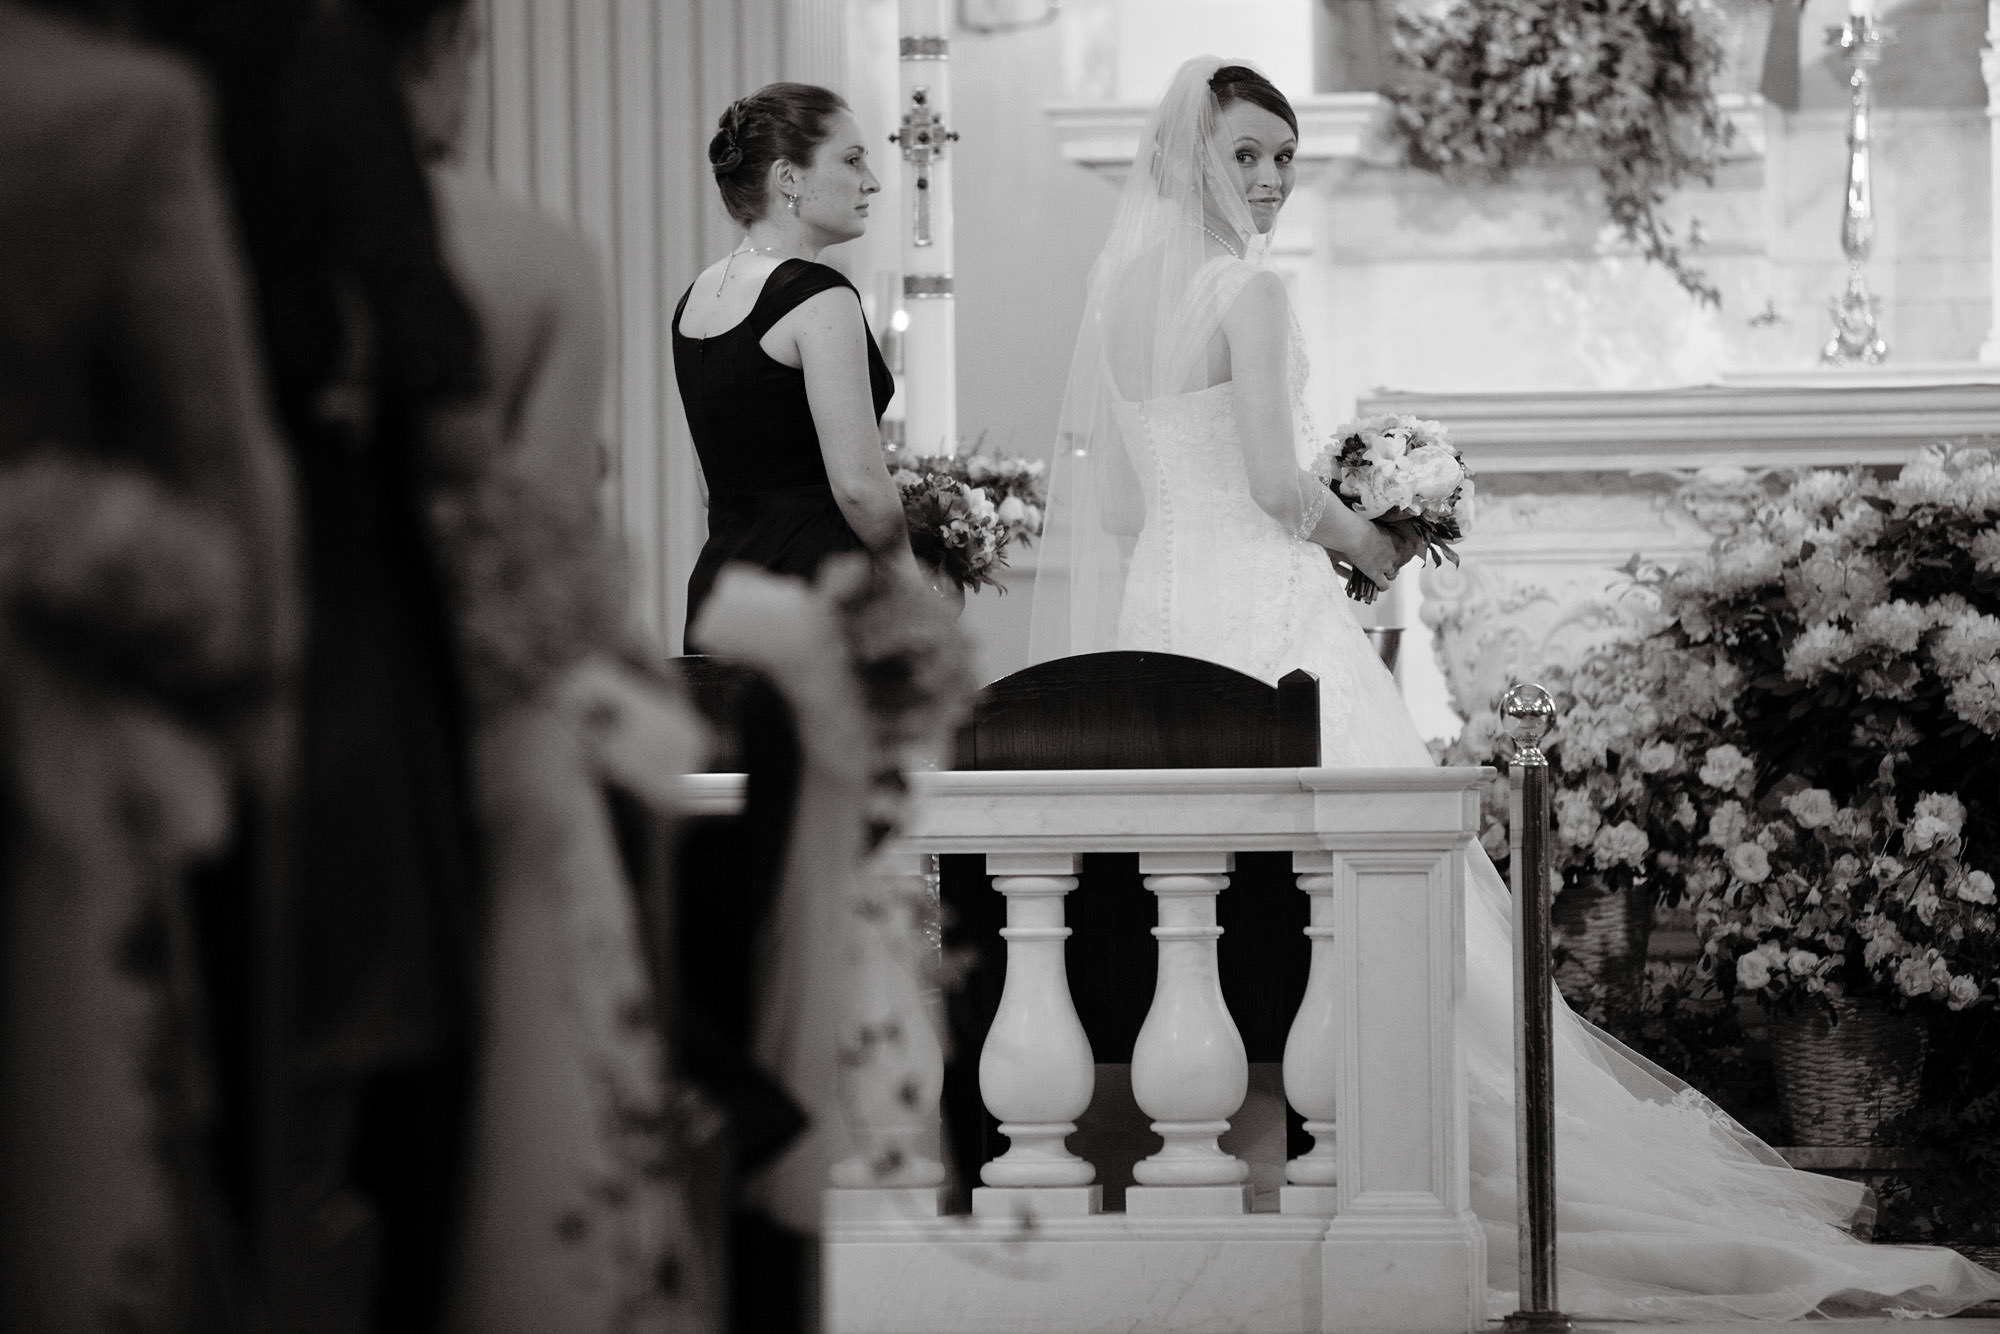 The bride looks at her guests during the wedding ceremony at St. Catherine Church in Spring Lake, NJ